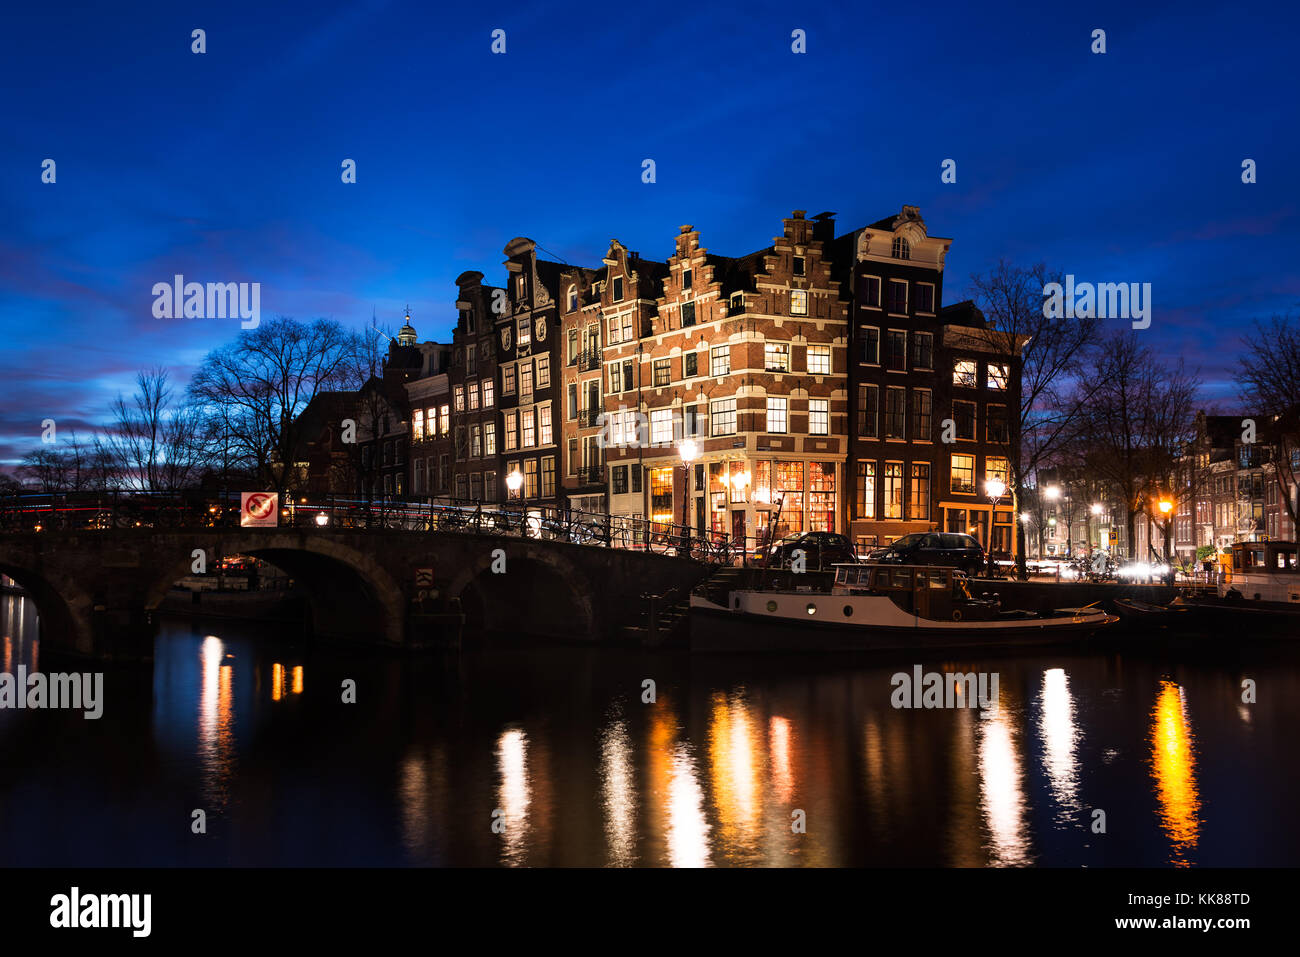 Typical Amsterdam canal houses in historic architecture along the canals a bridge over the water, illuminated at - Stock Image